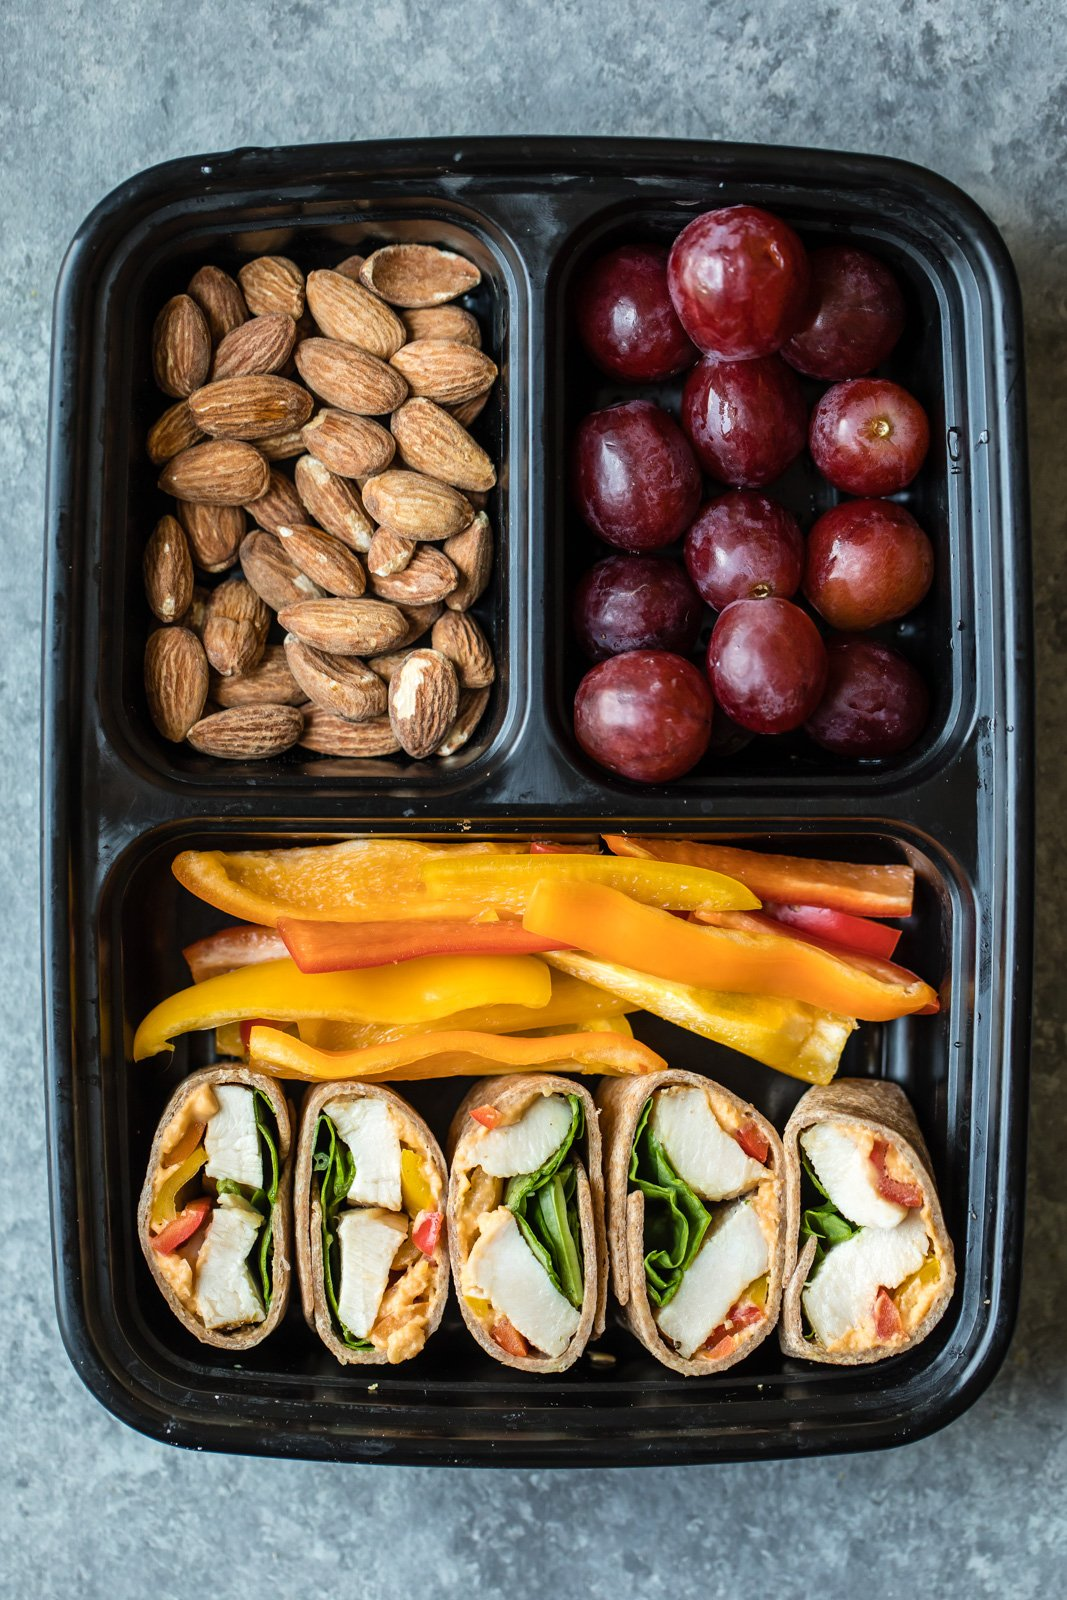 chicken wrap, pepper slices, grapes, and almonds in a bento box